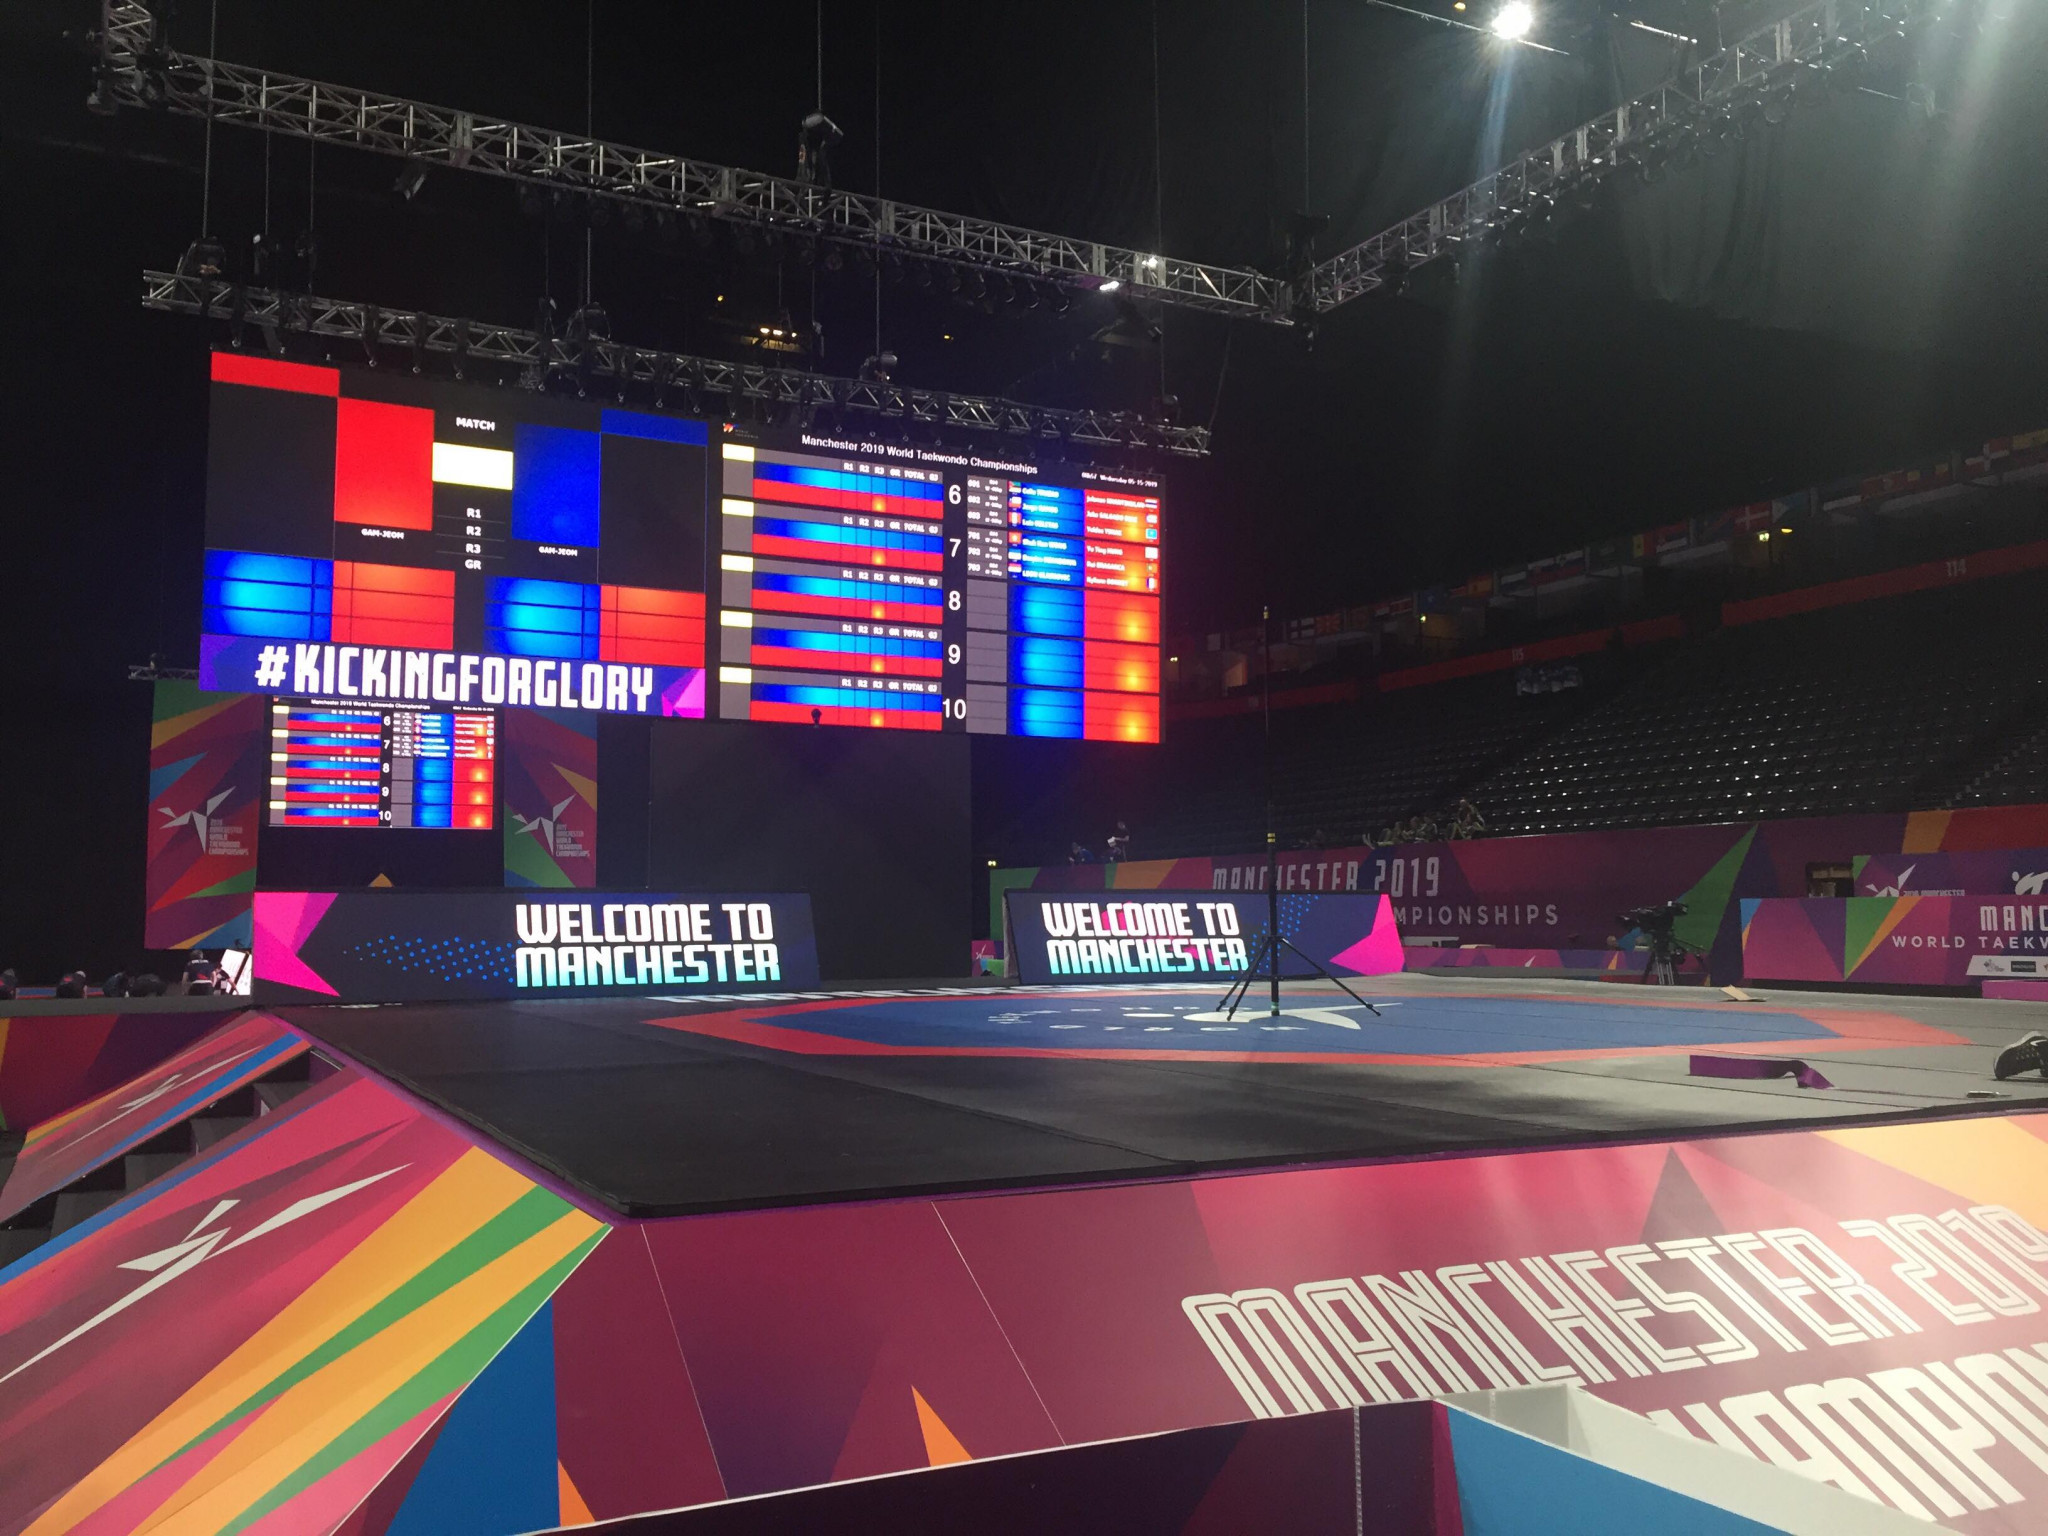 The Opening Ceremony was part of the first day of action at the World Championships, taking place at Manchester Arena ©ITG